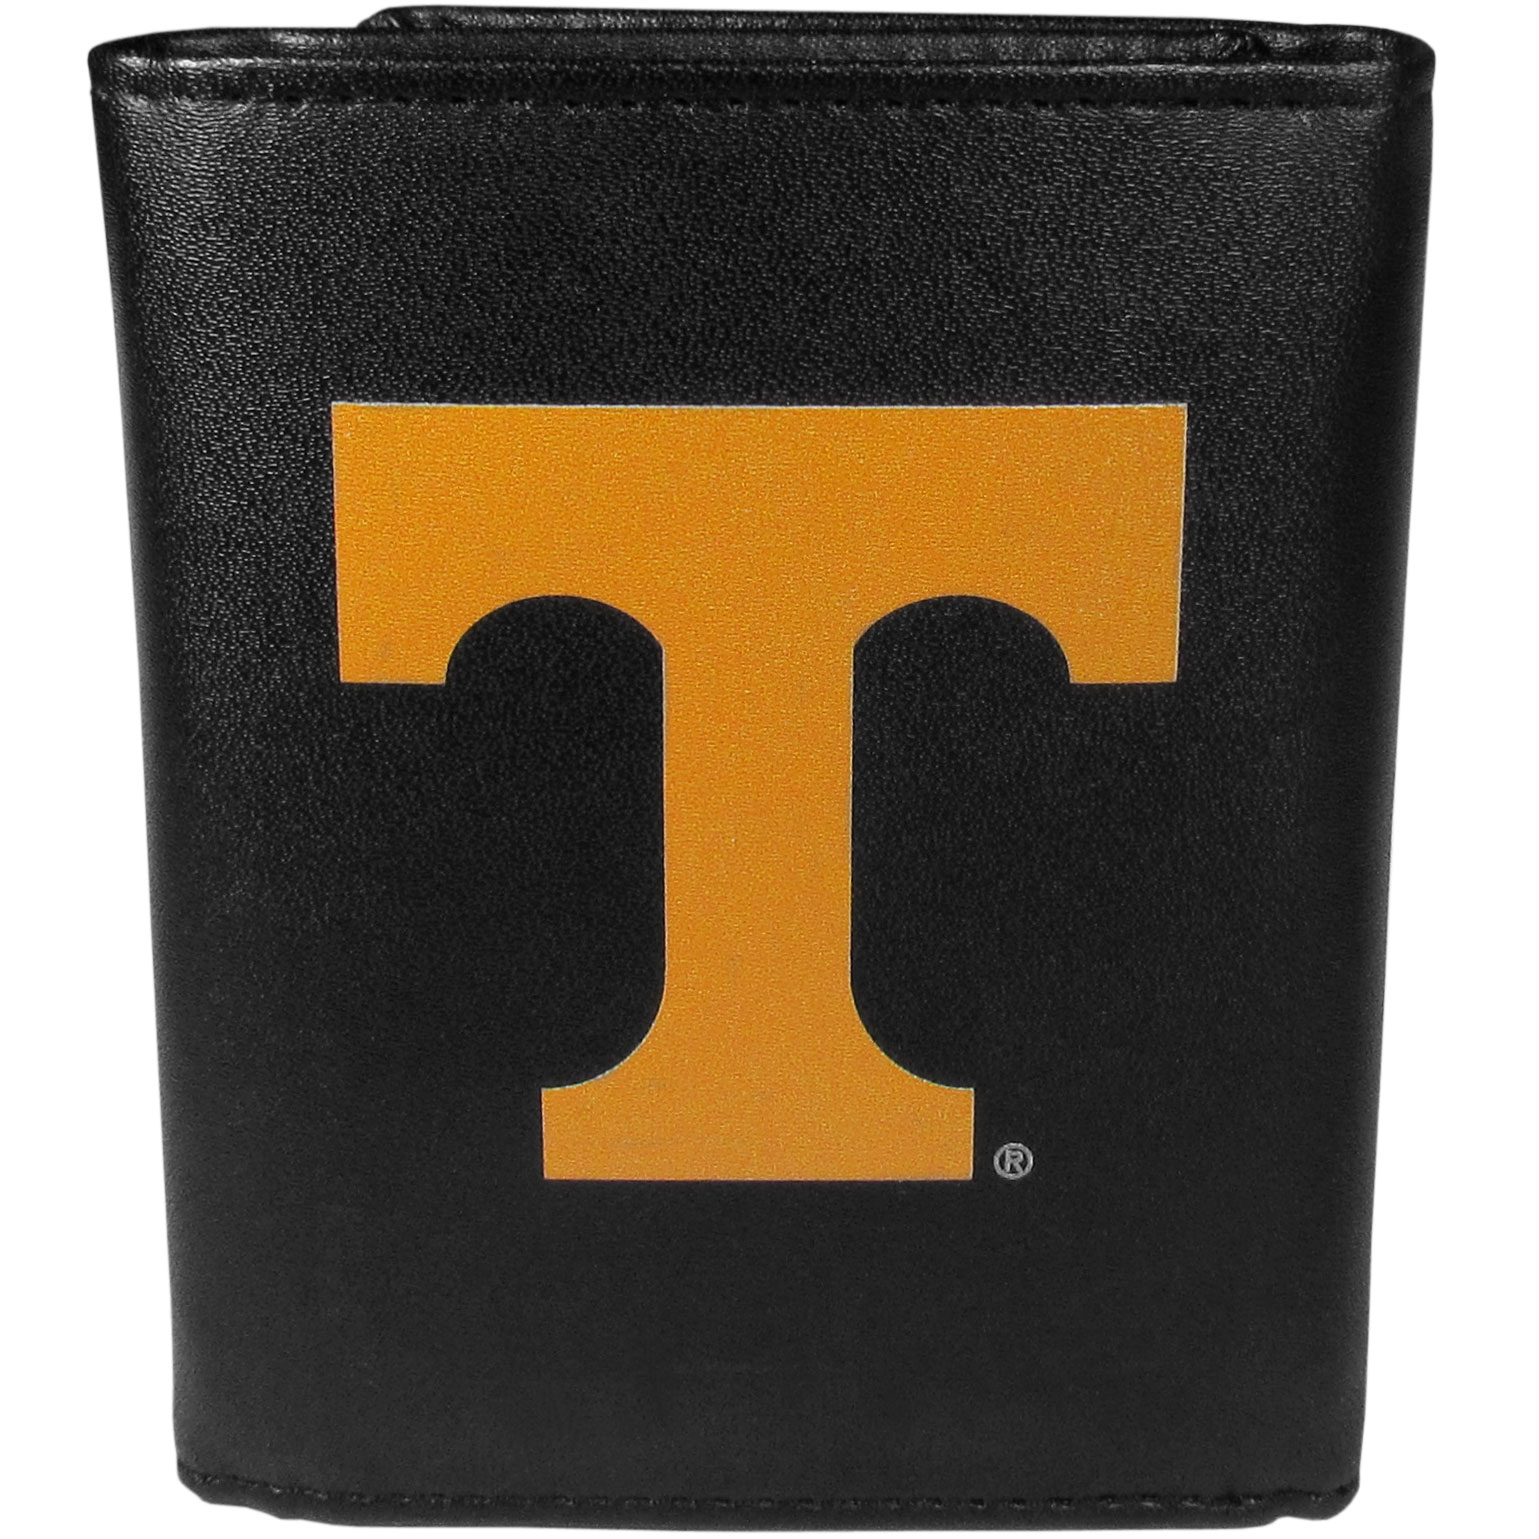 Tennessee Volunteers Leather Tri-fold Wallet, Large Logo - Our classic fine leather tri-fold wallet is meticulously crafted with genuine leather that will age beautifully so you will have a quality wallet for years to come. This is fan apparel at its finest. The wallet is packed with organizational  features; lots of credit card slots, large billfold pocket, and a window ID slot. The front of the wallet features an extra large Tennessee Volunteers printed logo.